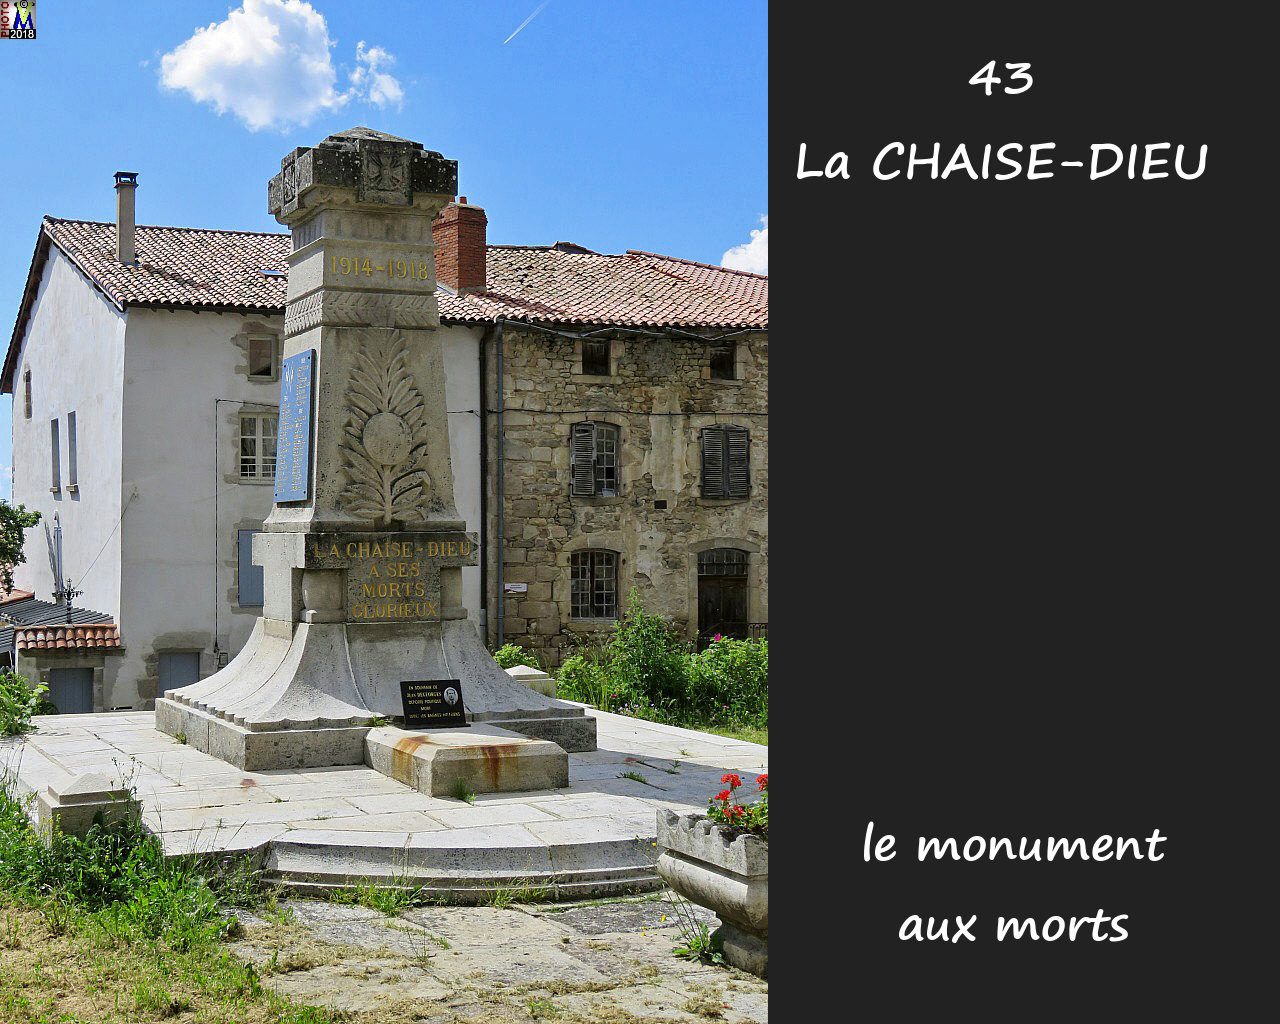 43CHAISE-DIEU_morts_100.jpg